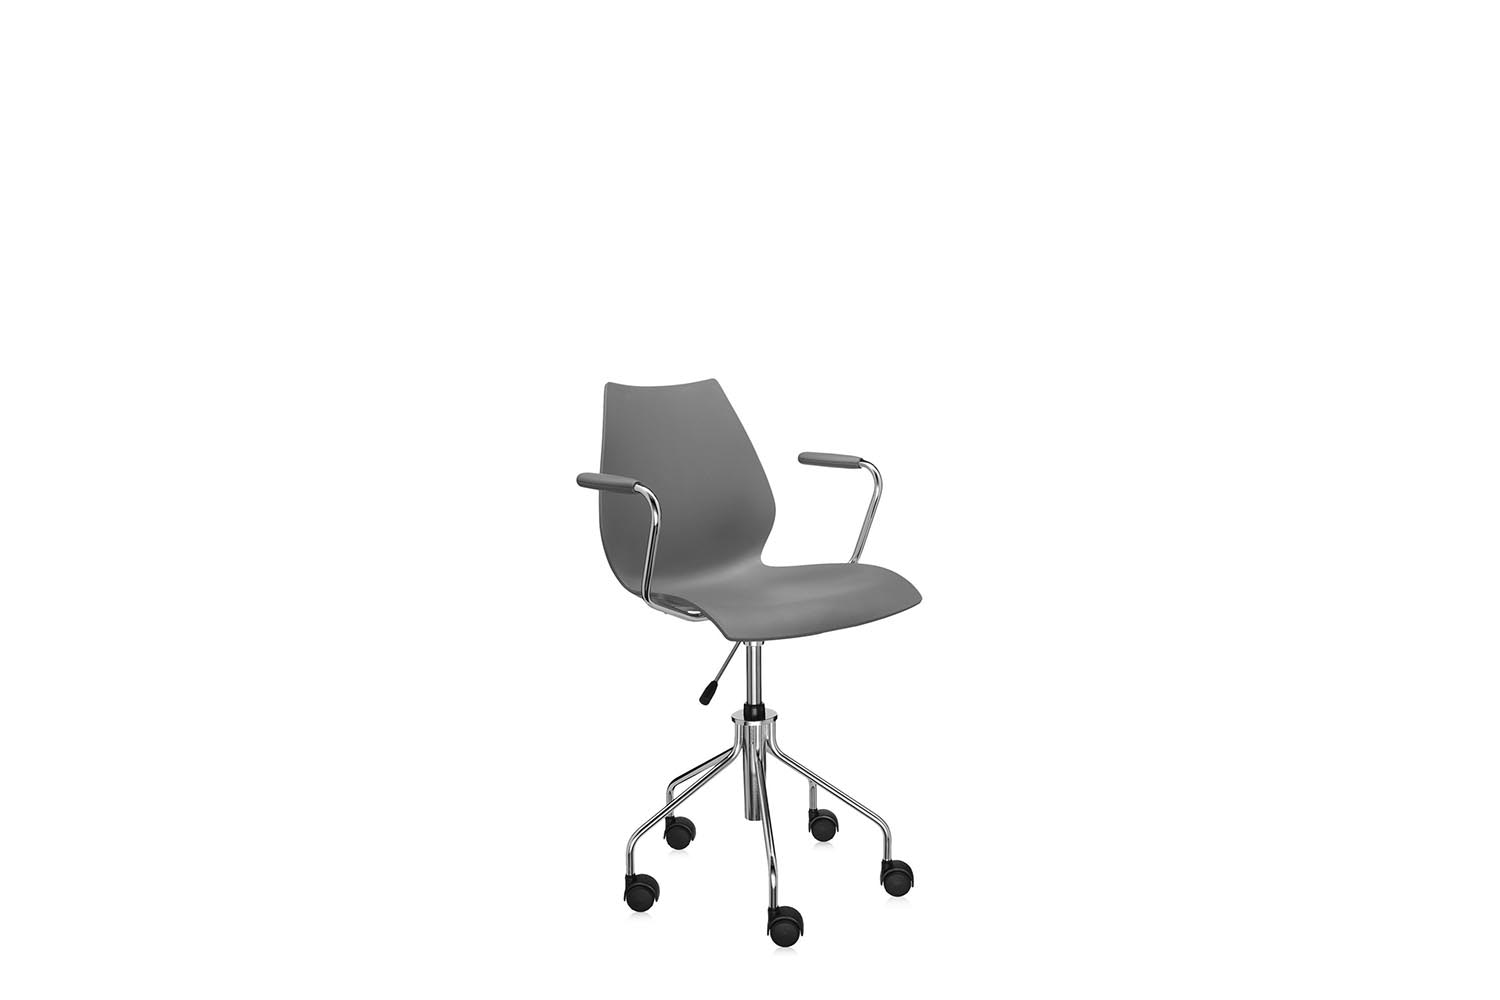 Maui Office Swivel Chair with Arms by Vico Magistretti for Kartell